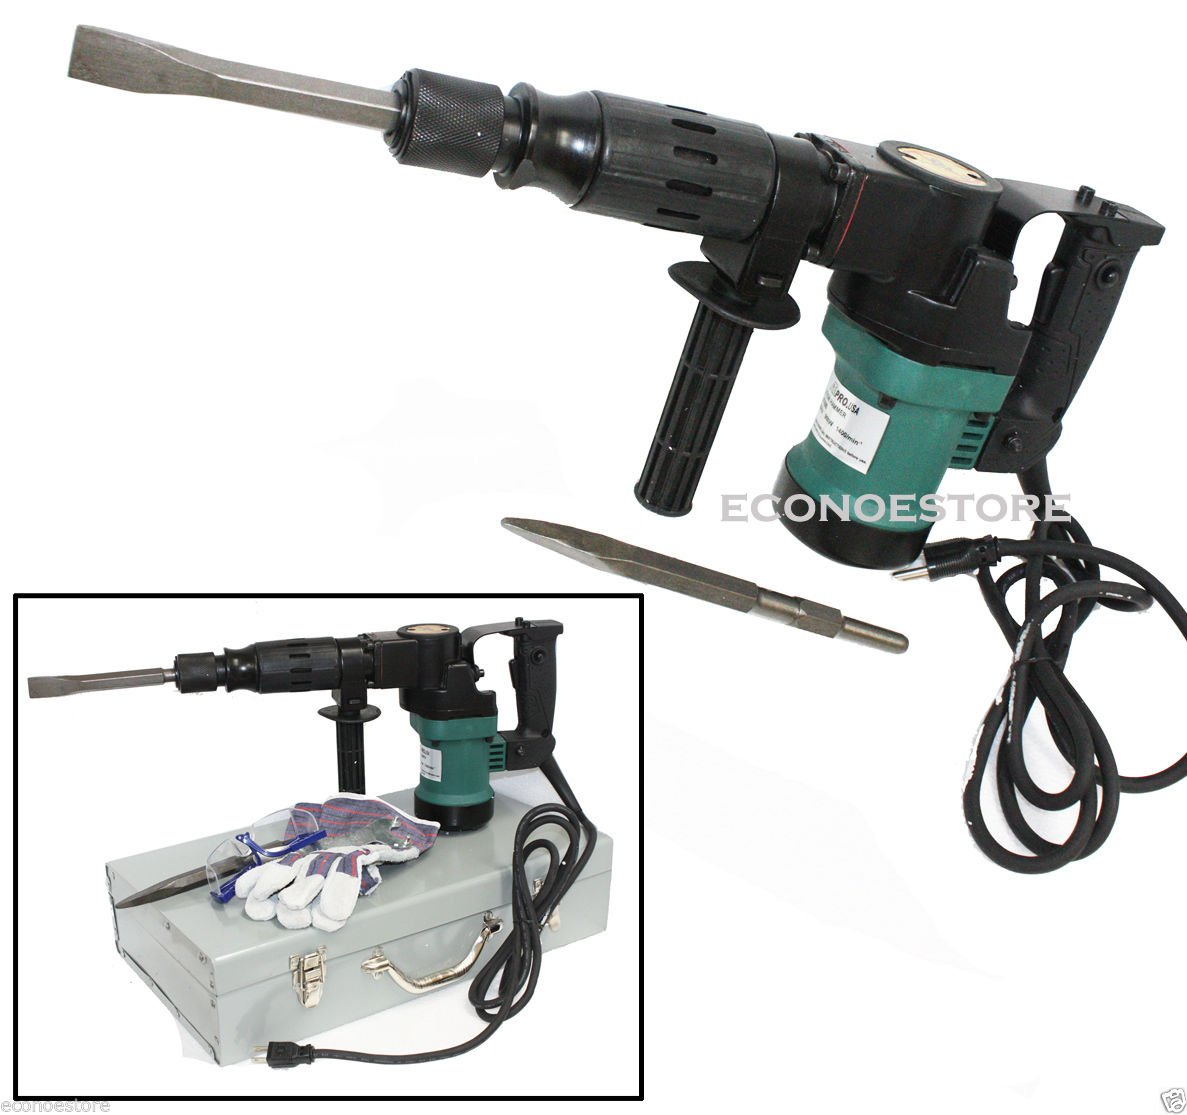 3000BPM 900W 1-1 2 Electric Demolition Hammer Concrete Breaker W Chisels Bits